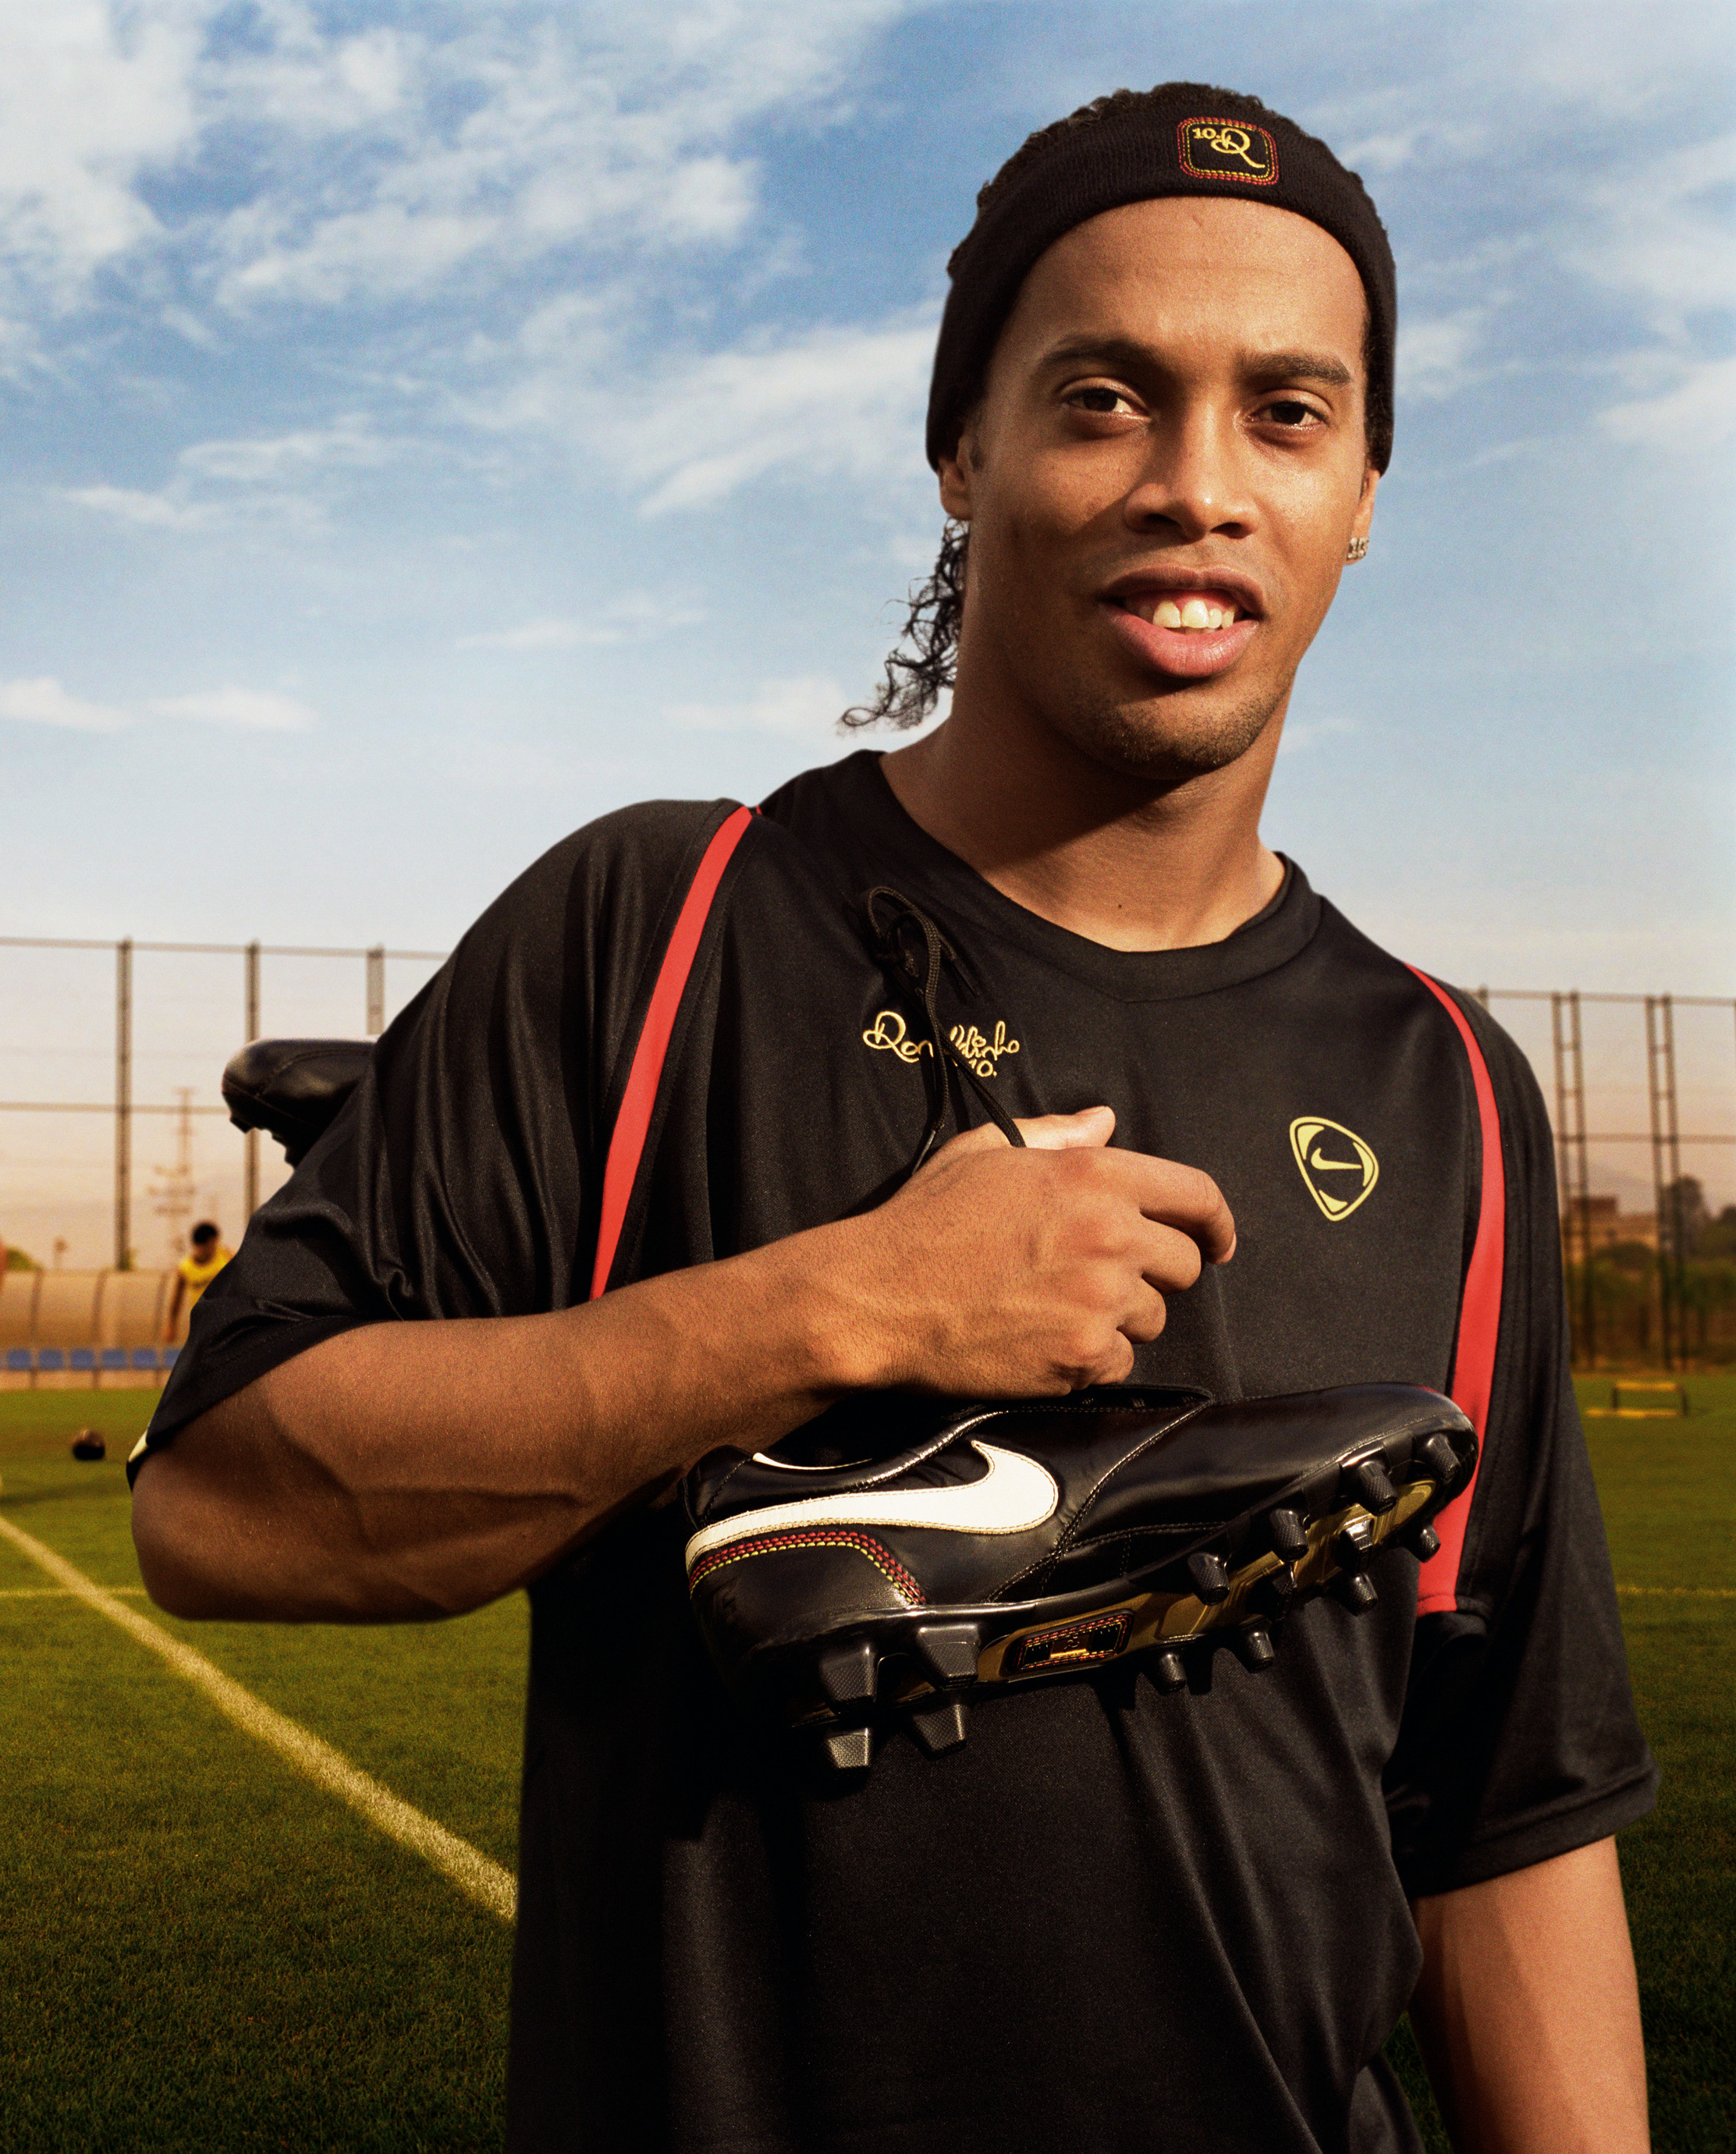 http://sandio.files.wordpress.com/2008/07/ronaldinho_20_10r_boot_011.jpg